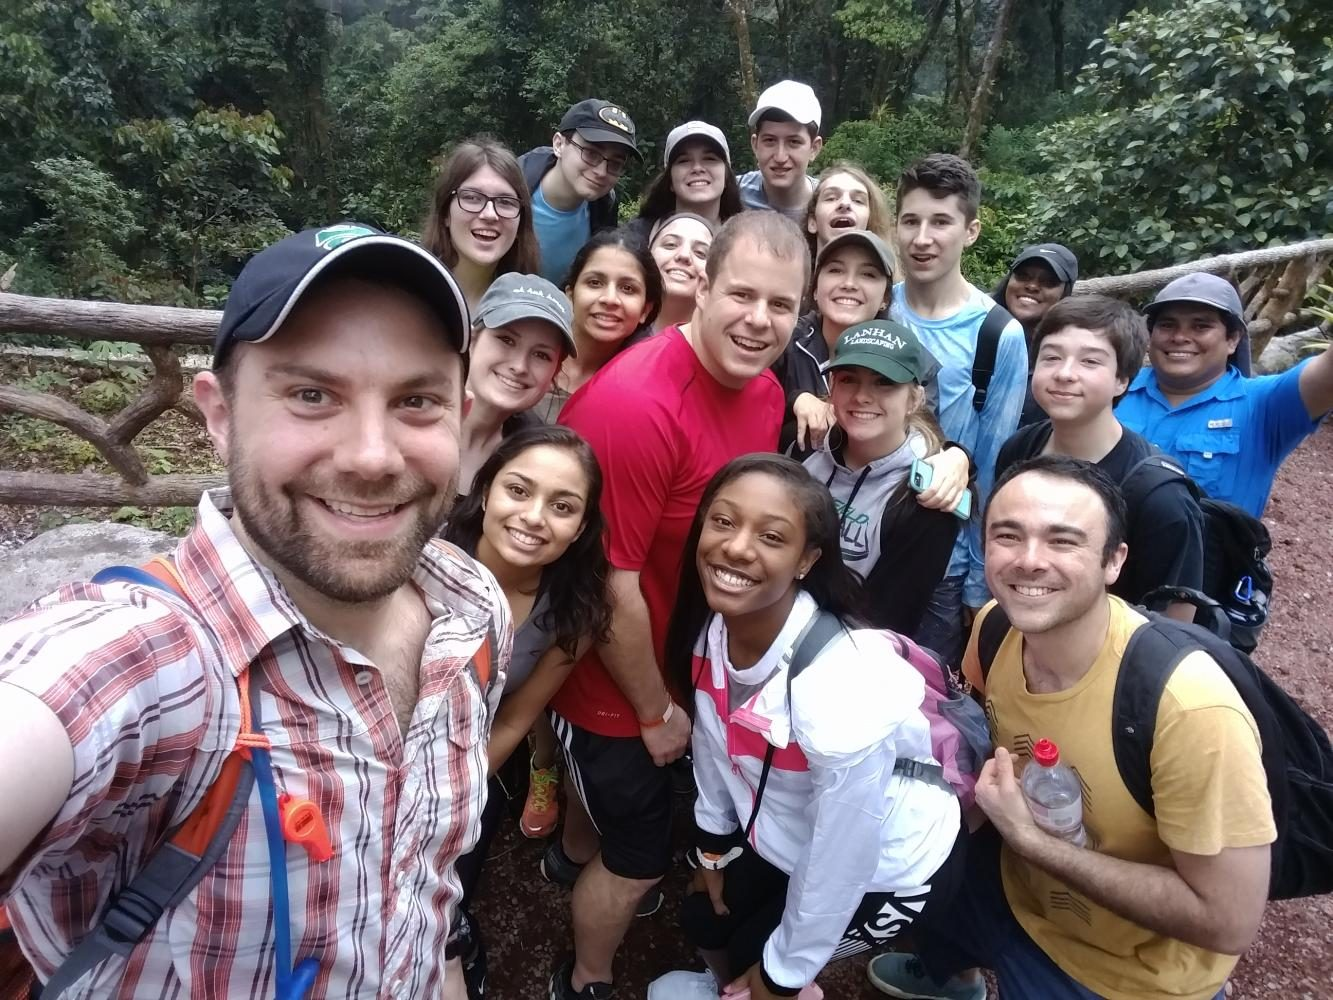 The+spring+break+trip+to+Costa+Rica+was+chaperoned+by+Mr.+Phil+Deaton+and+Mr.+Corey+Rice.